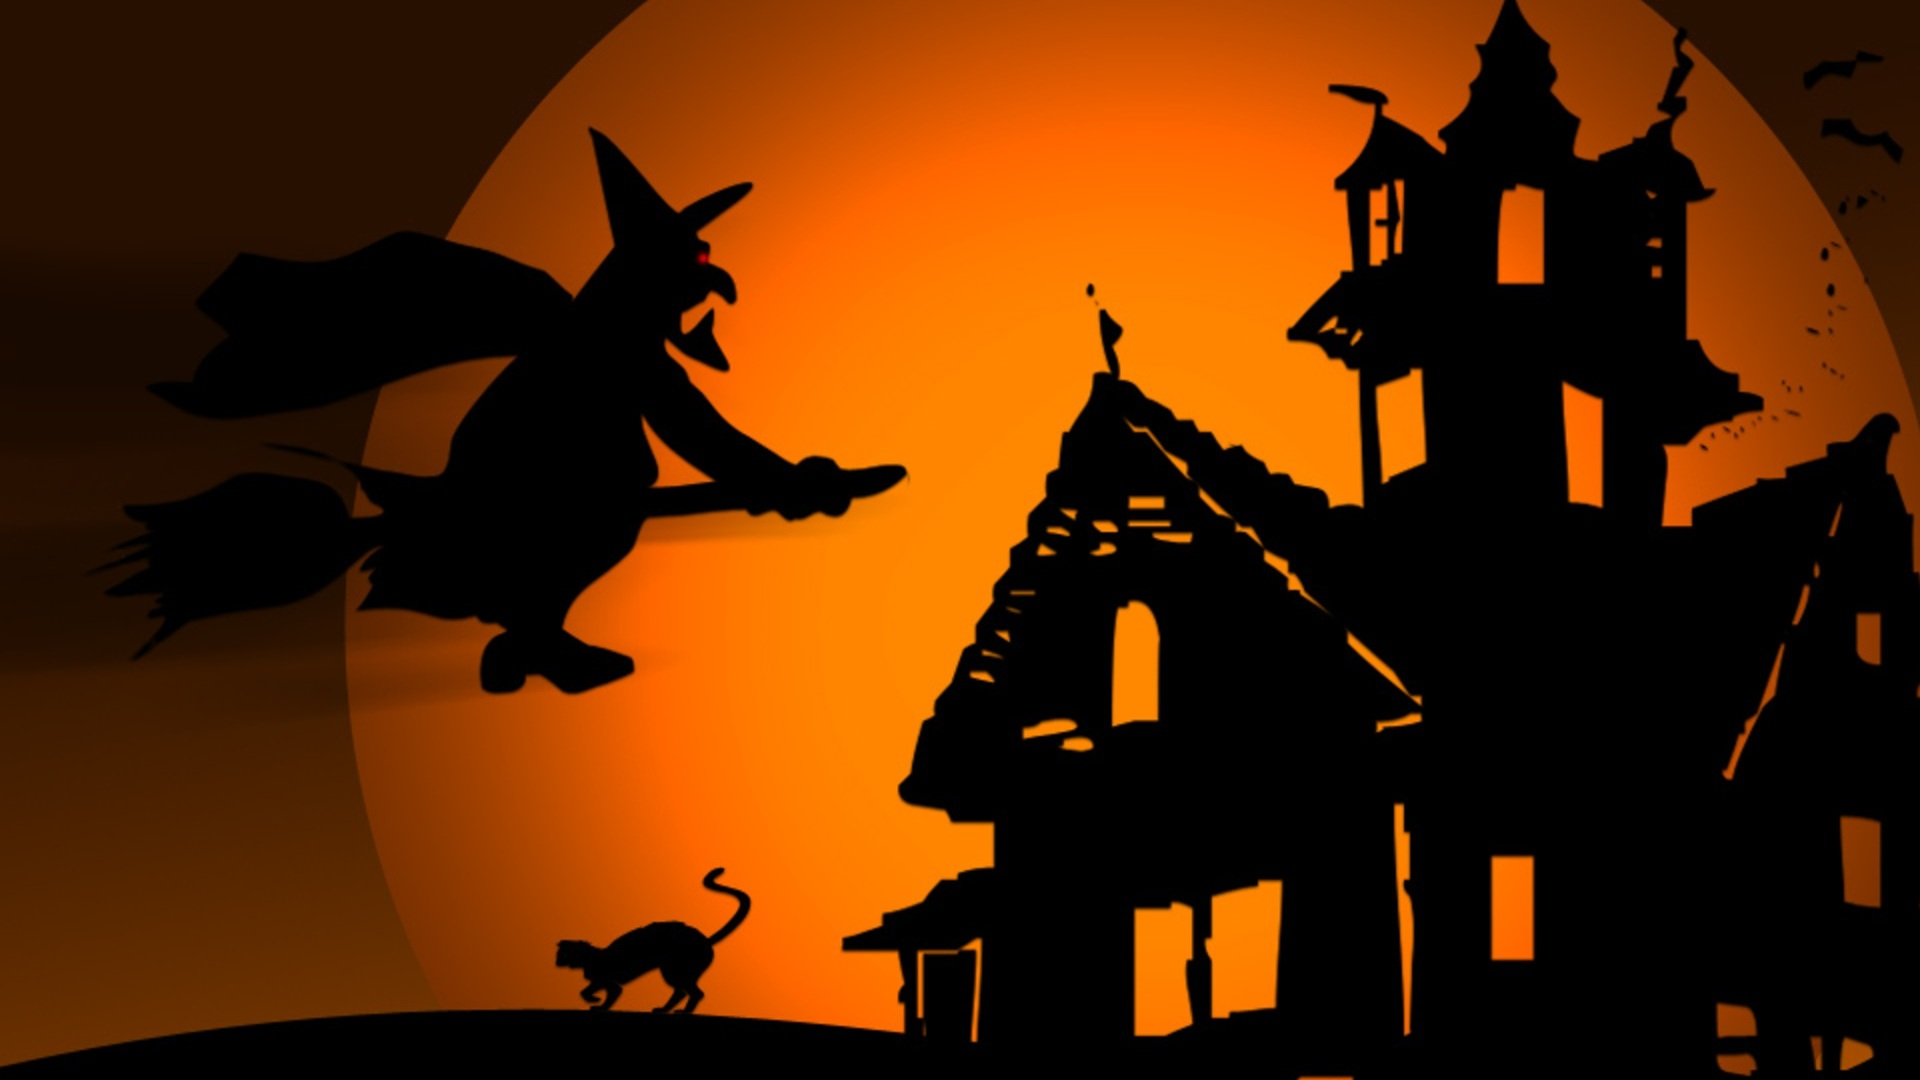 Halloween Wallpapers 83, Free Wallpapers, Free Desktop Wallpapers, HD ...